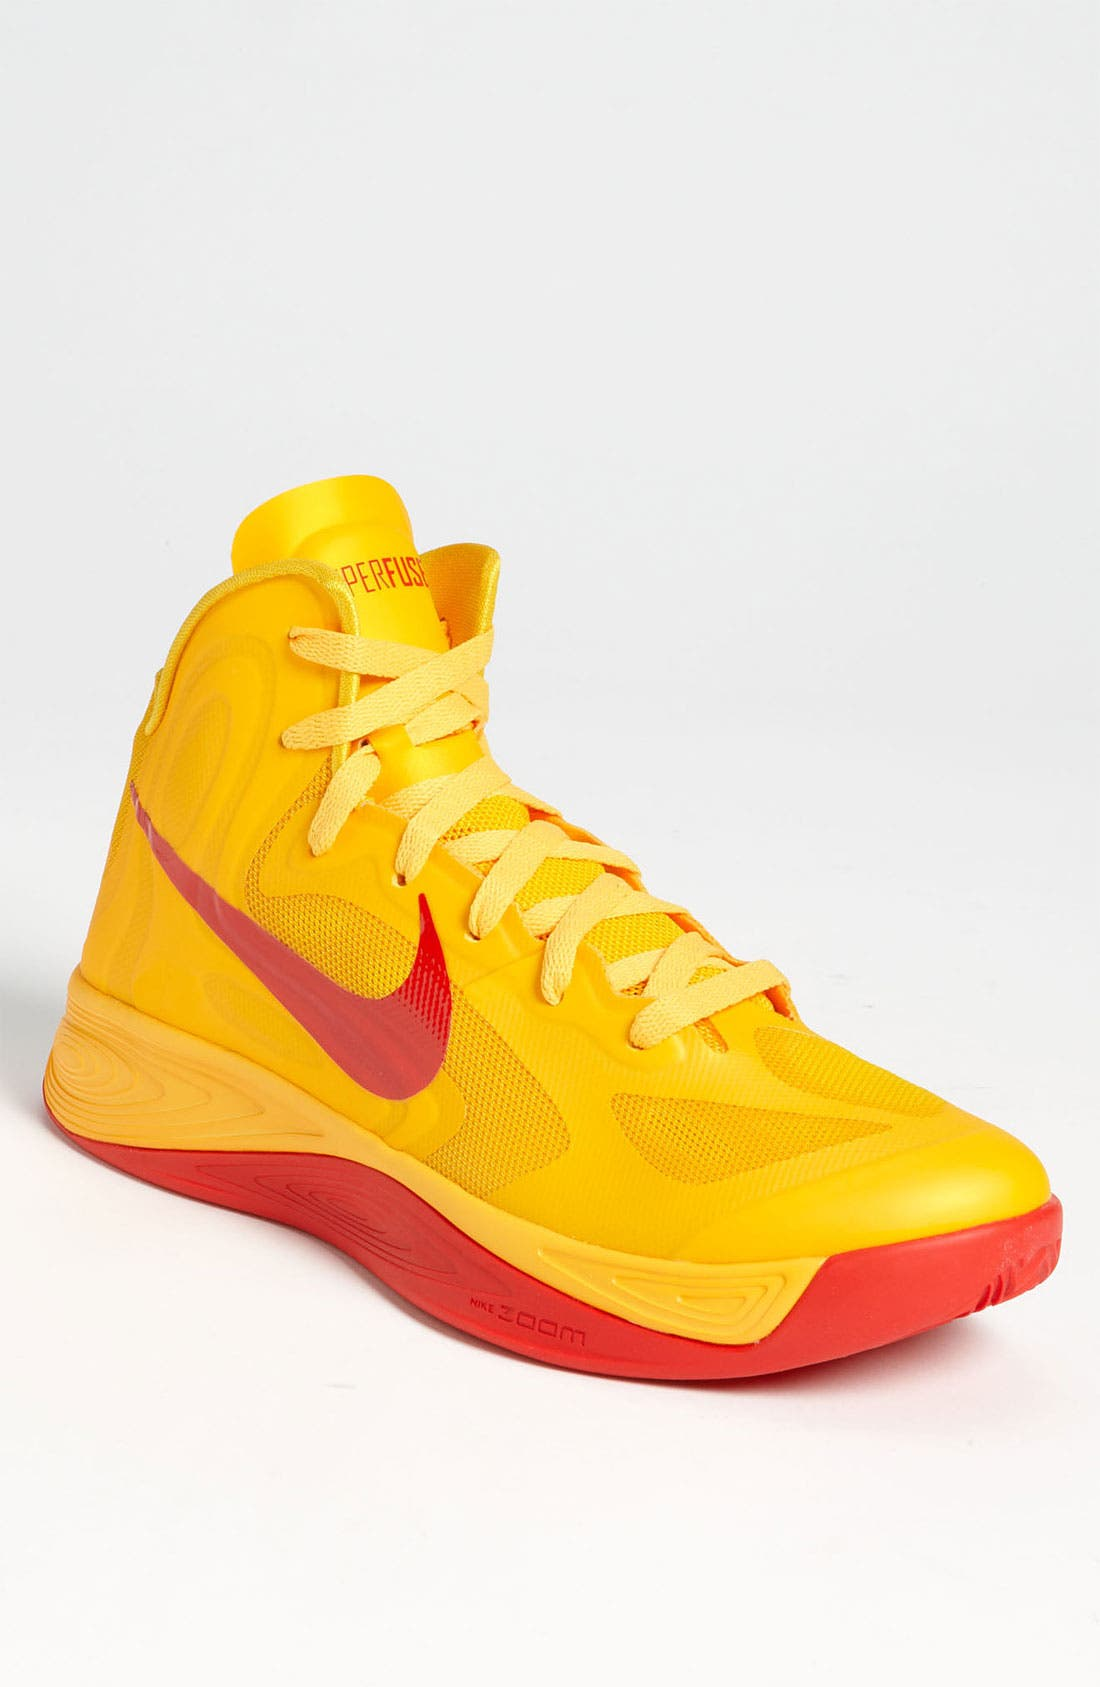 Alternate Image 1 Selected - Nike 'Zoom Hyperfuse 2012' Basketball Shoe (Men)